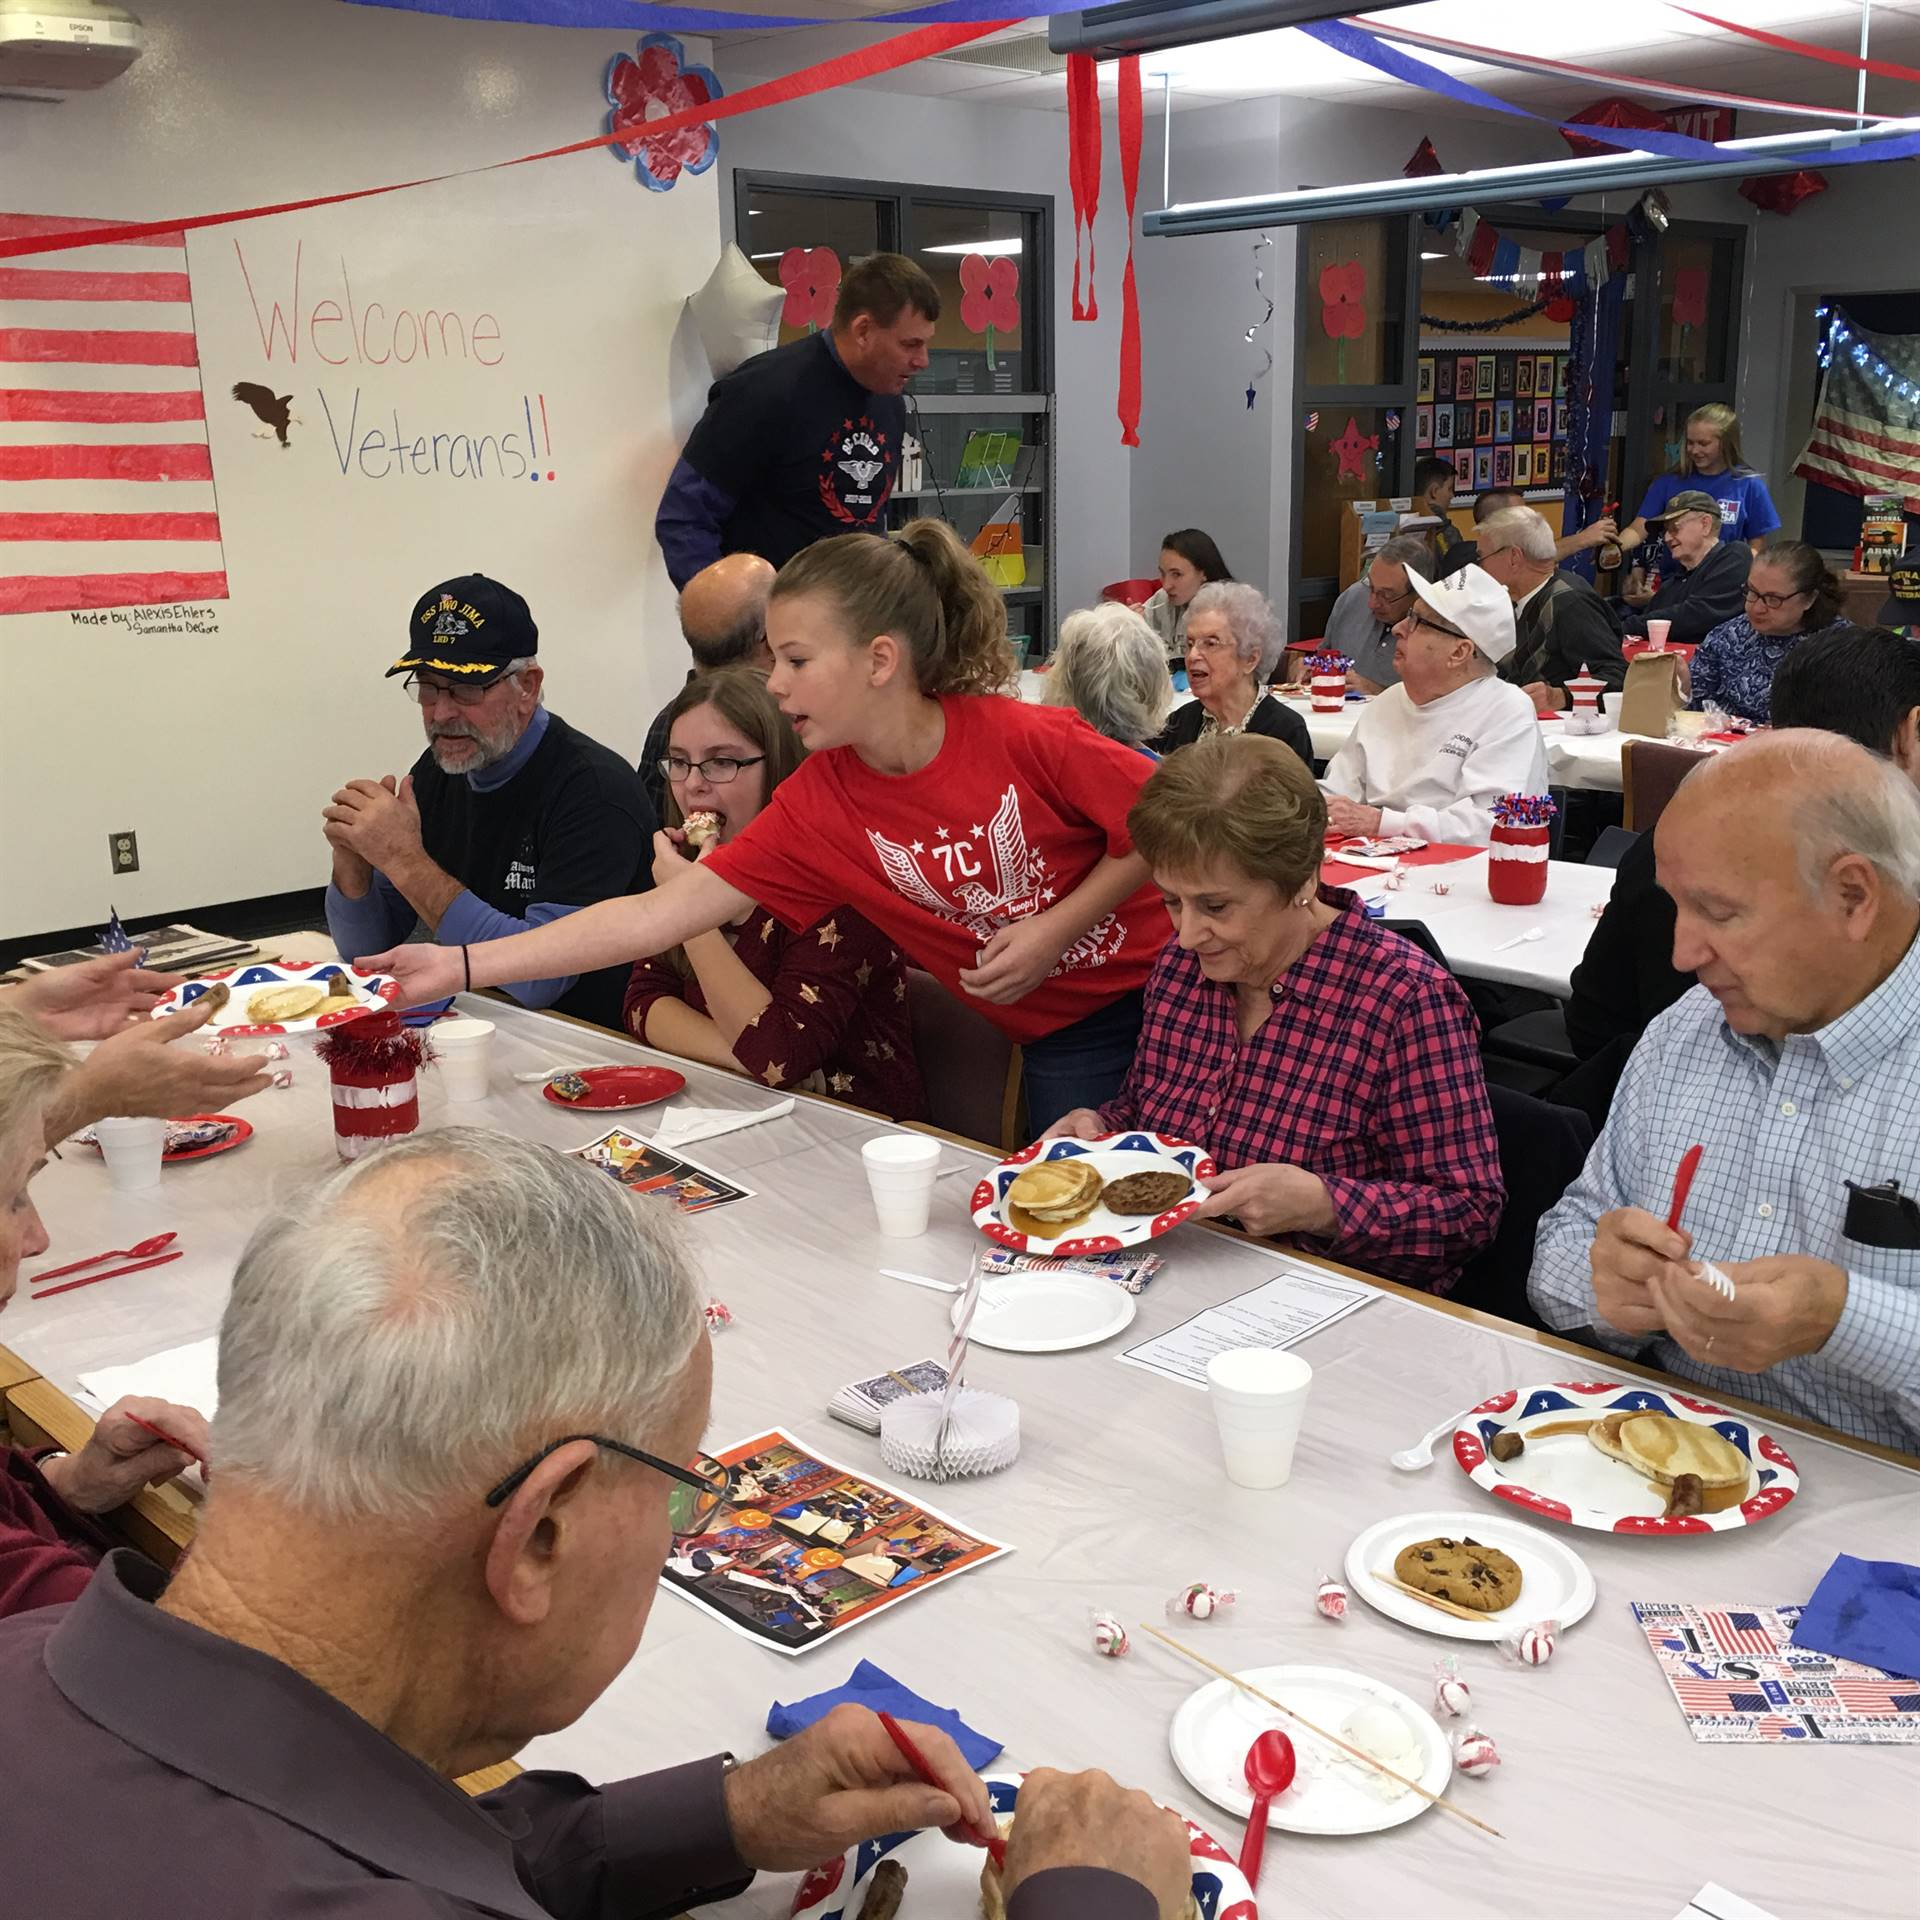 Serving pancakes and sausage to the Veterans